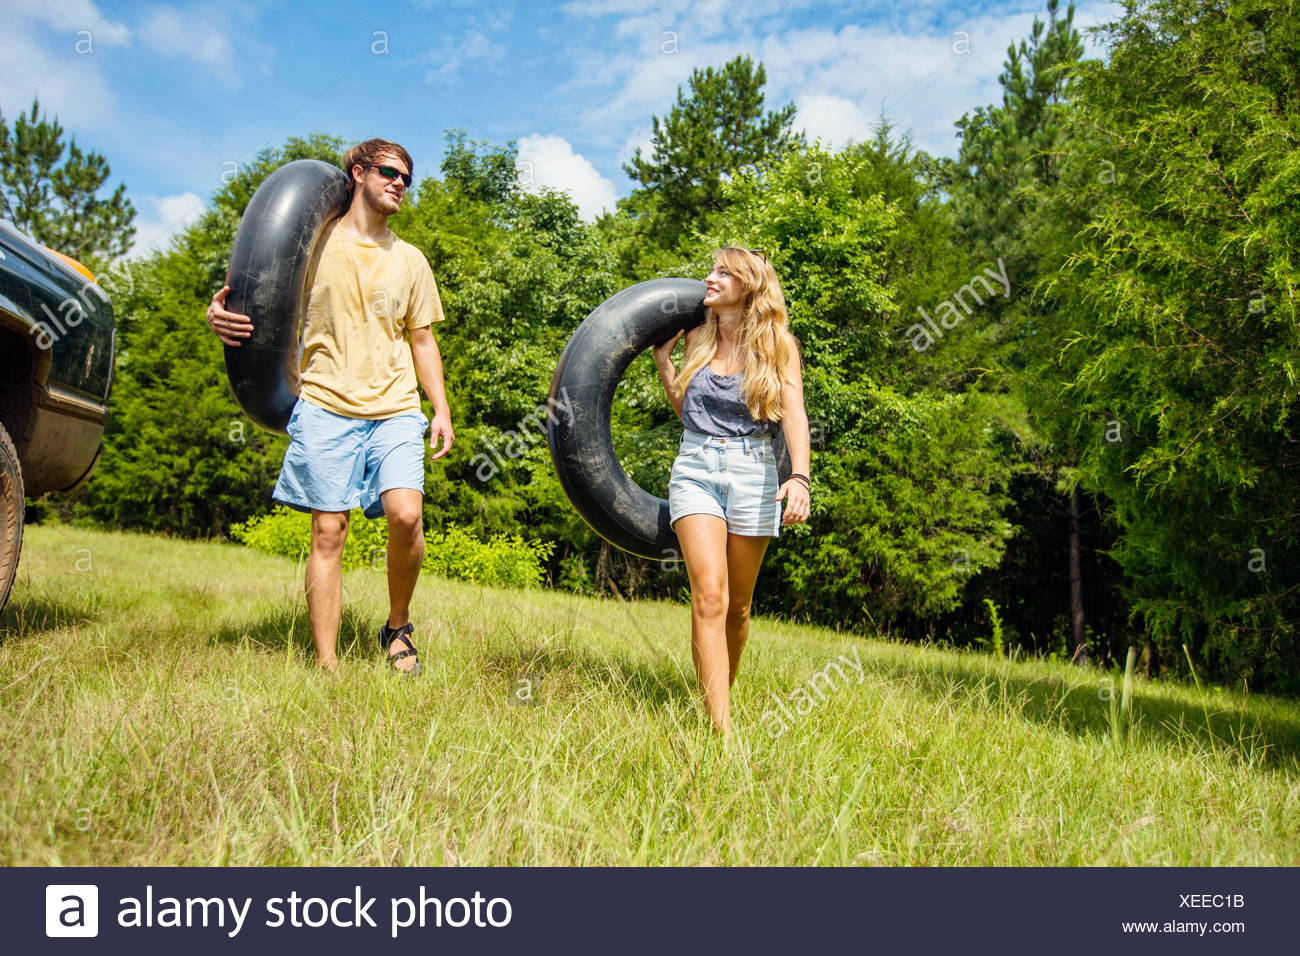 A young couple getting ready to tube down a river. - Stock Image